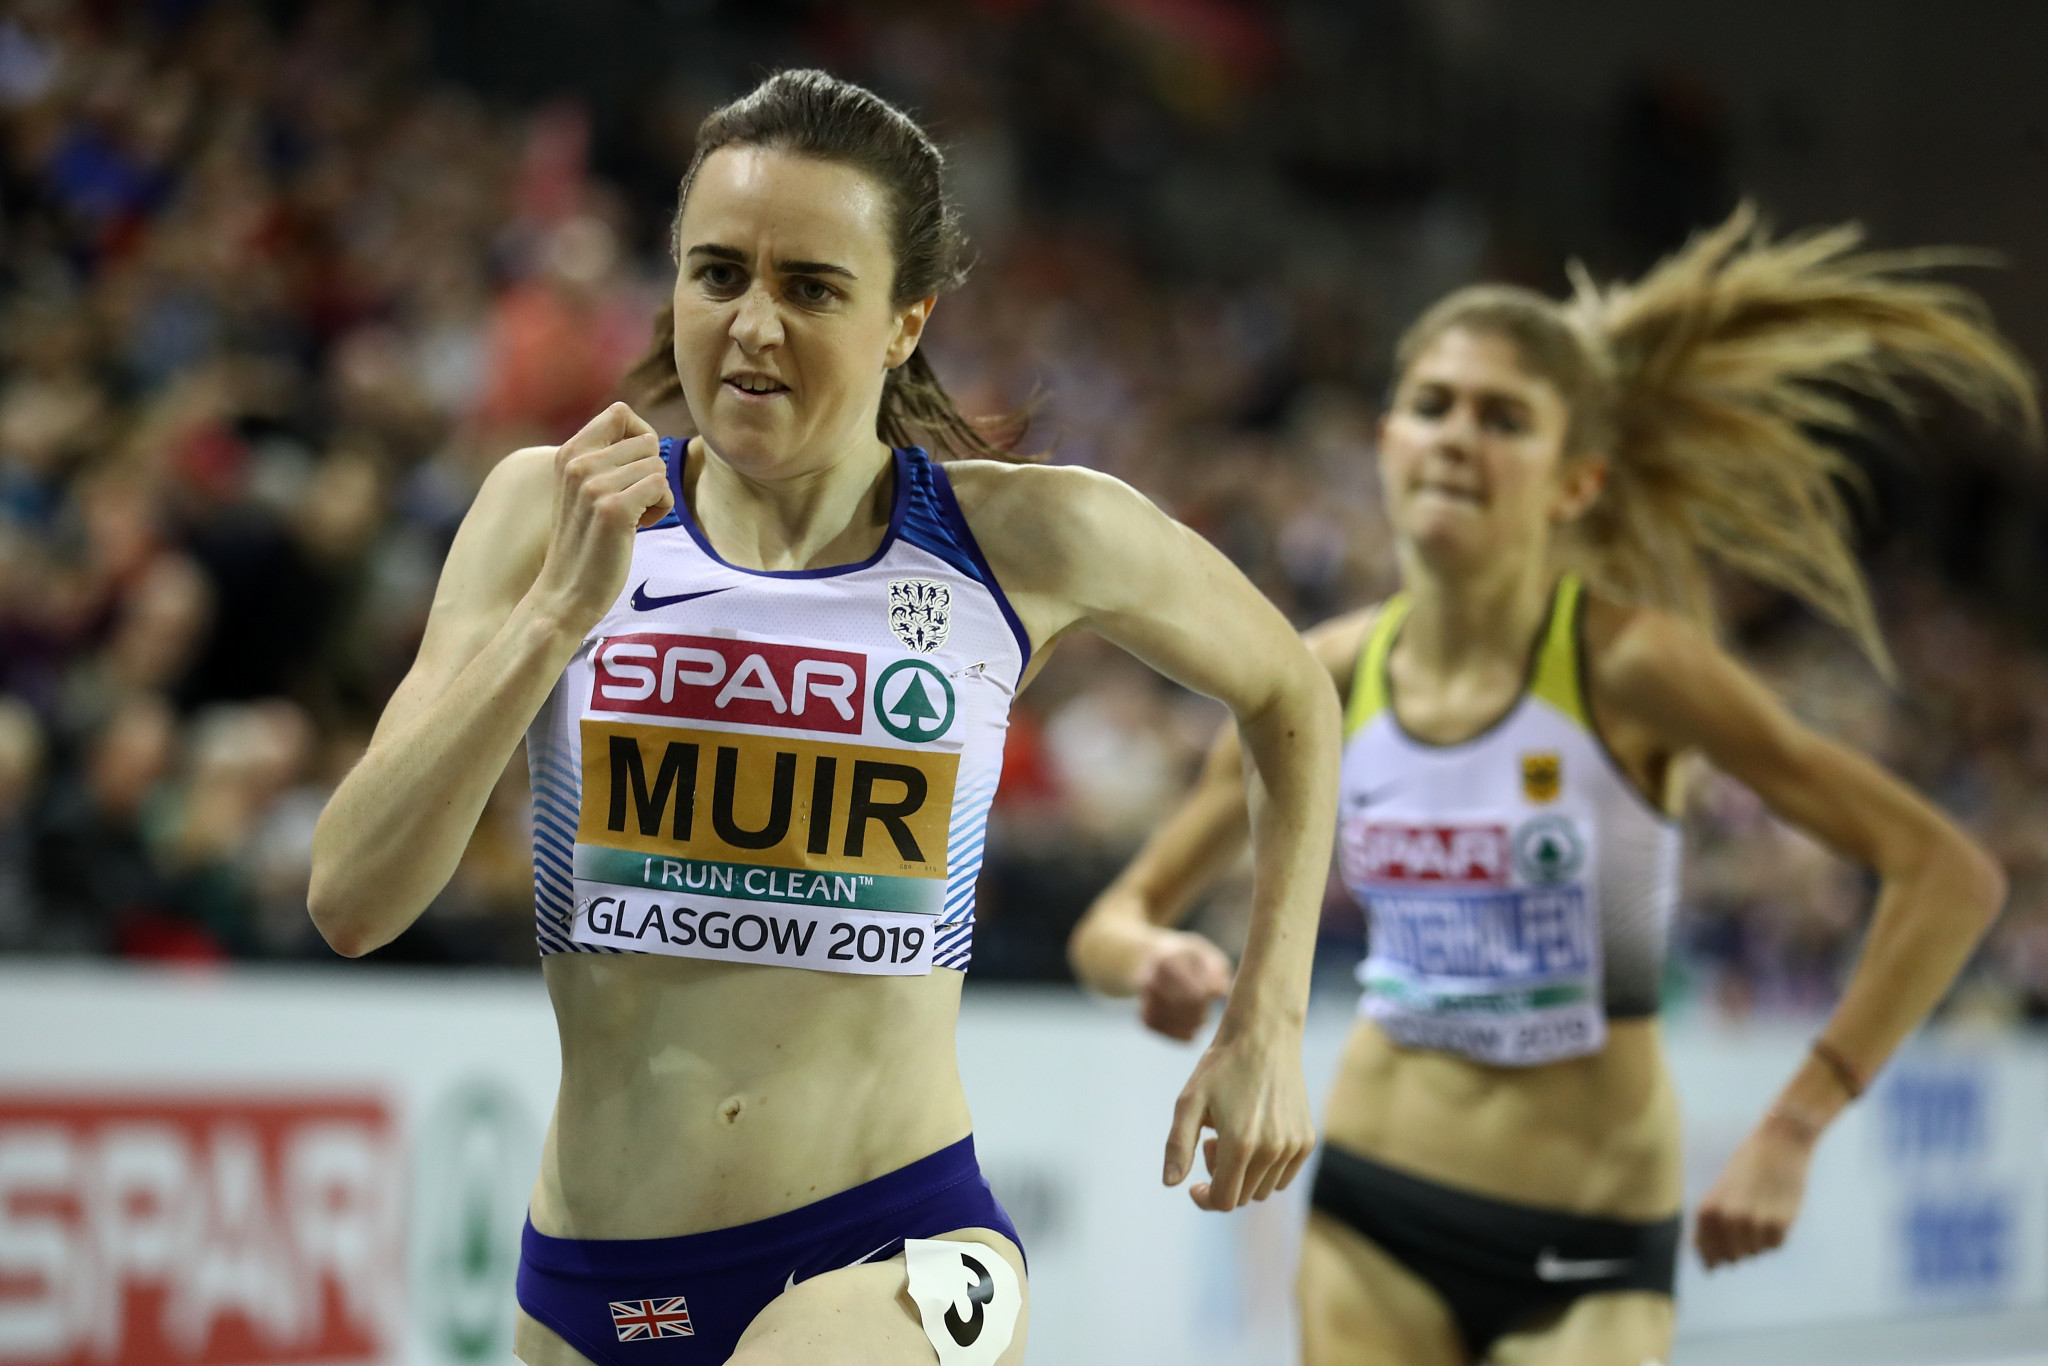 Laura Muir has established herself at the very top of women's athletics ©Getty Images